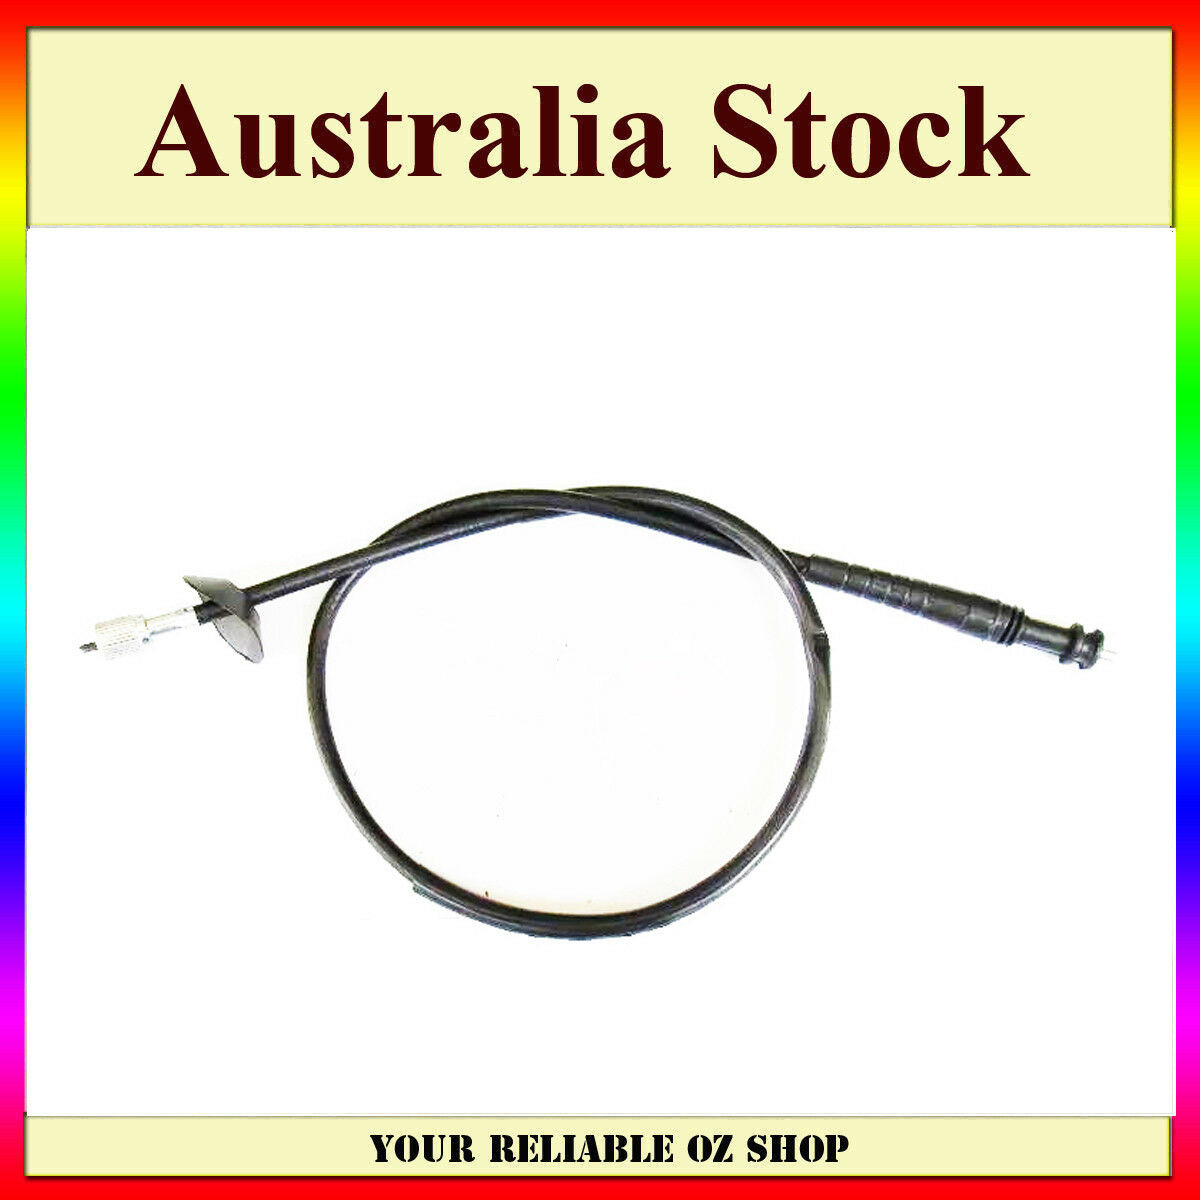 Speedo Cable For Honda Ct110 Ct90 Postie Bike 1349 Picclick Au Wiring 1 Of 4free Shipping